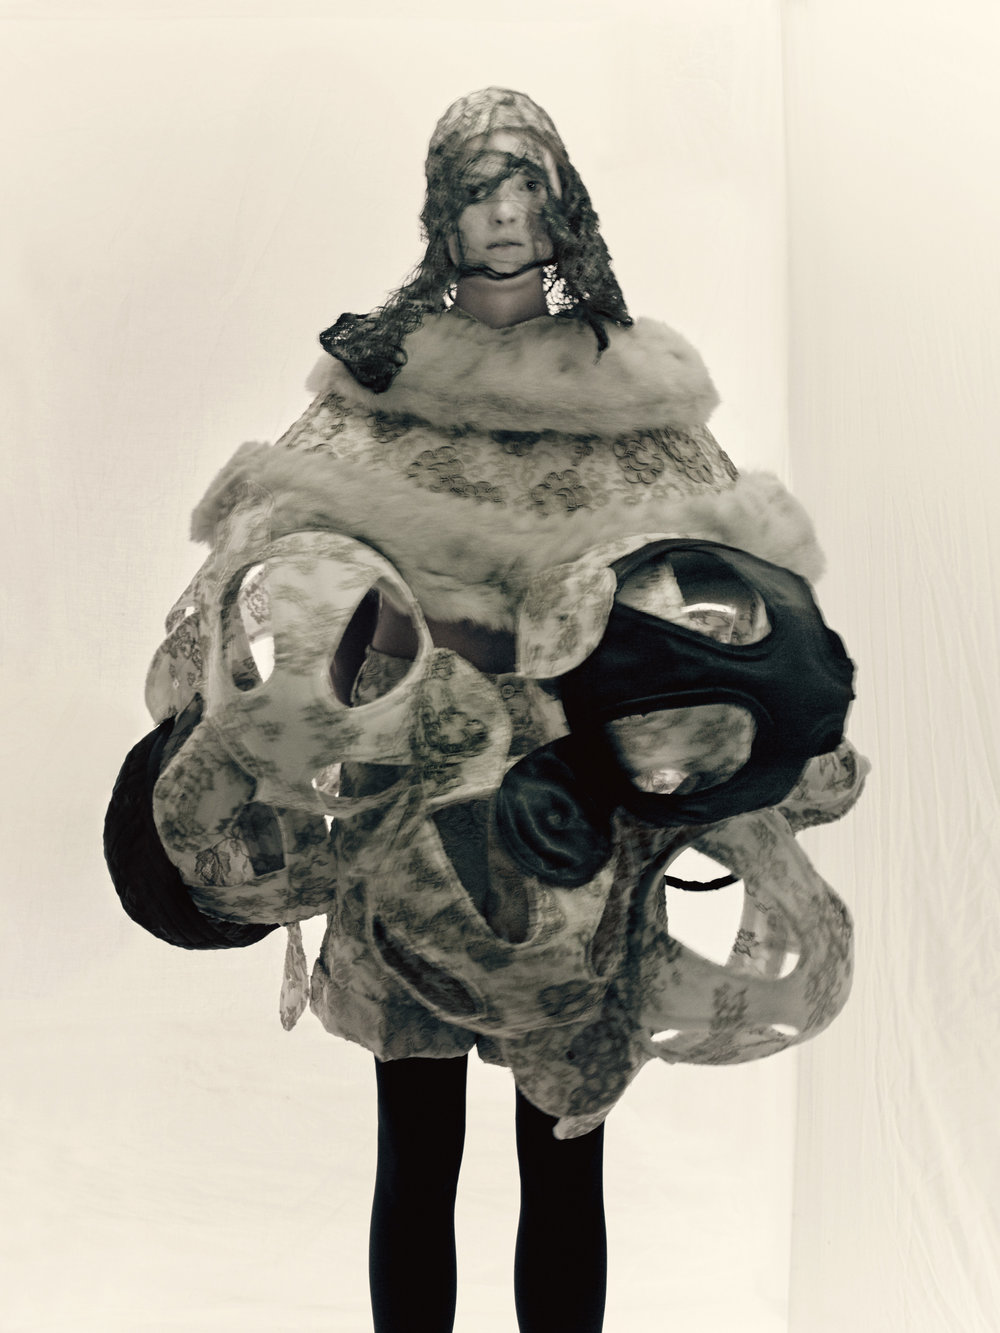 Rei Kawakubo (Japanese, born 1942) for Comme des Garçons  (Japanese, founded 1969). Ceremony of Separation,  autumn/winter 2015–2016.  Photograph by © Paolo Roversi; Courtesy of The Metropolitan  Museum of Art